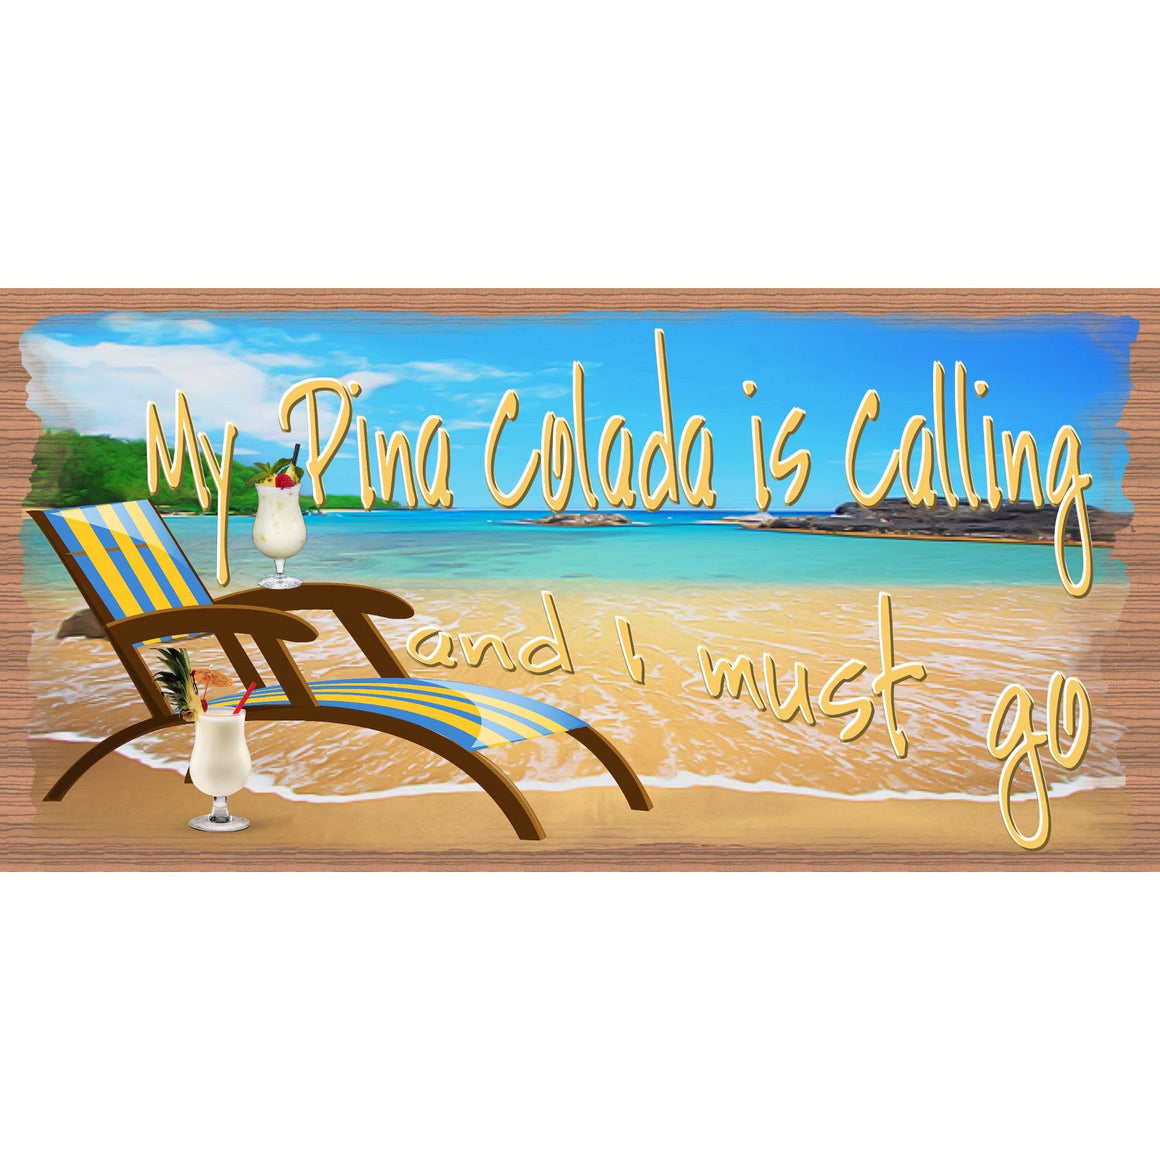 Tropical Sign - My Pina Colada is Calling - GS 2986 - Beach Sign